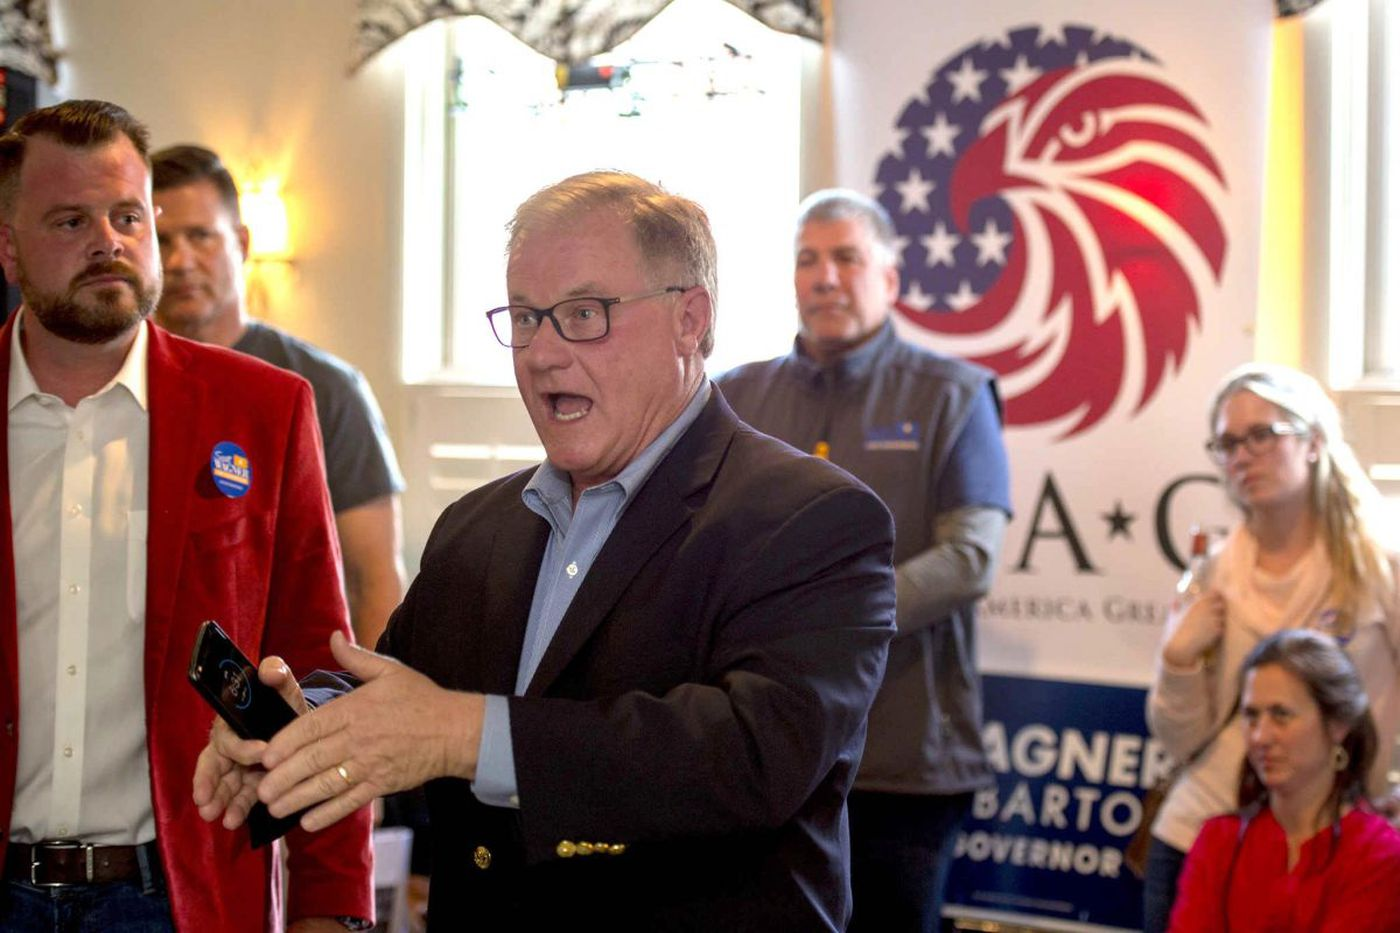 Scott Wagner wins Pa. Republican primary election for governor